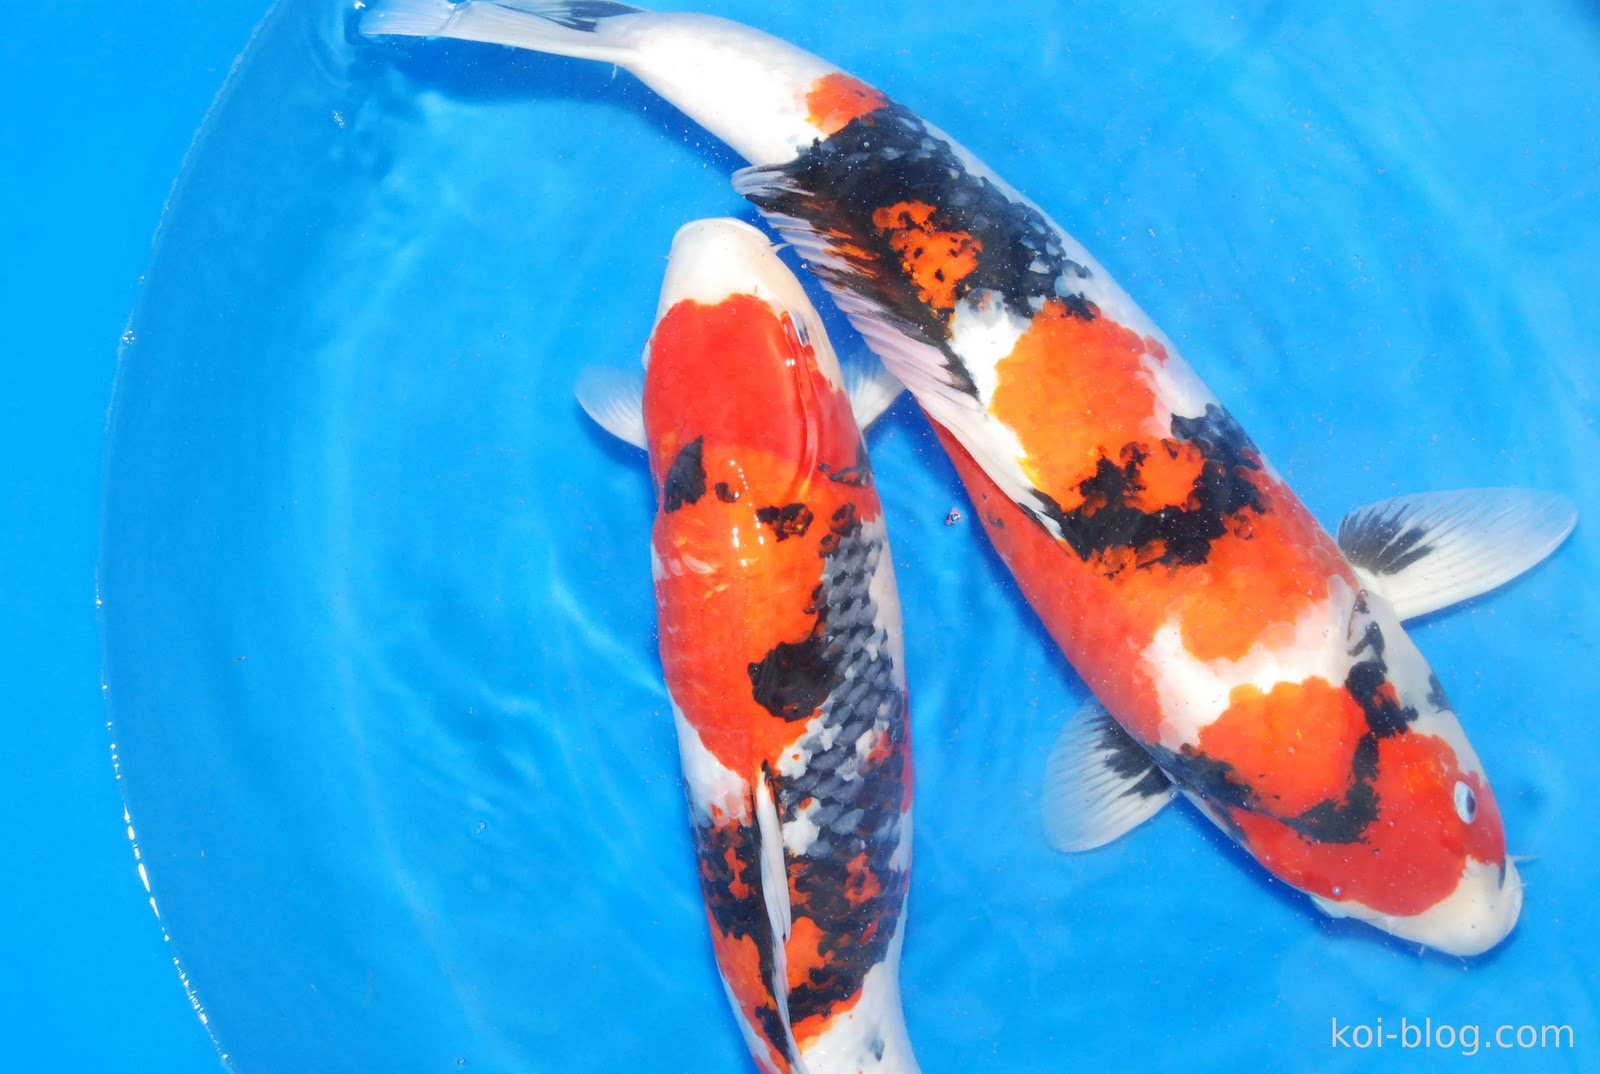 Koi blog koi for Japanese ornamental fish